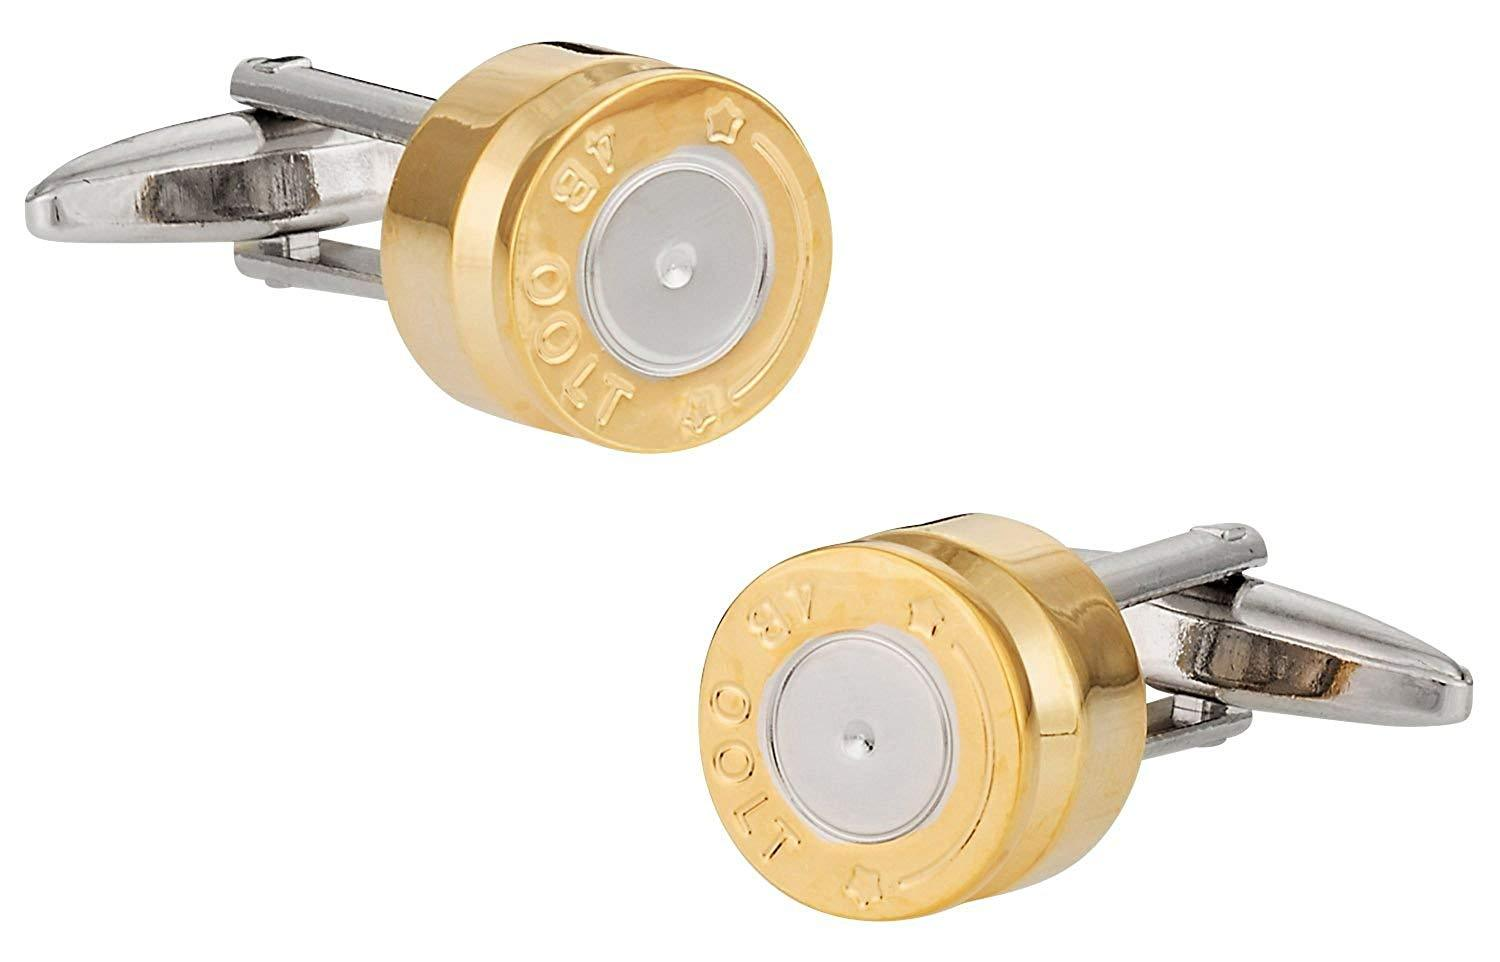 Cuff-Daddy Spent Bullet Casing Cufflinks with Presentation Box